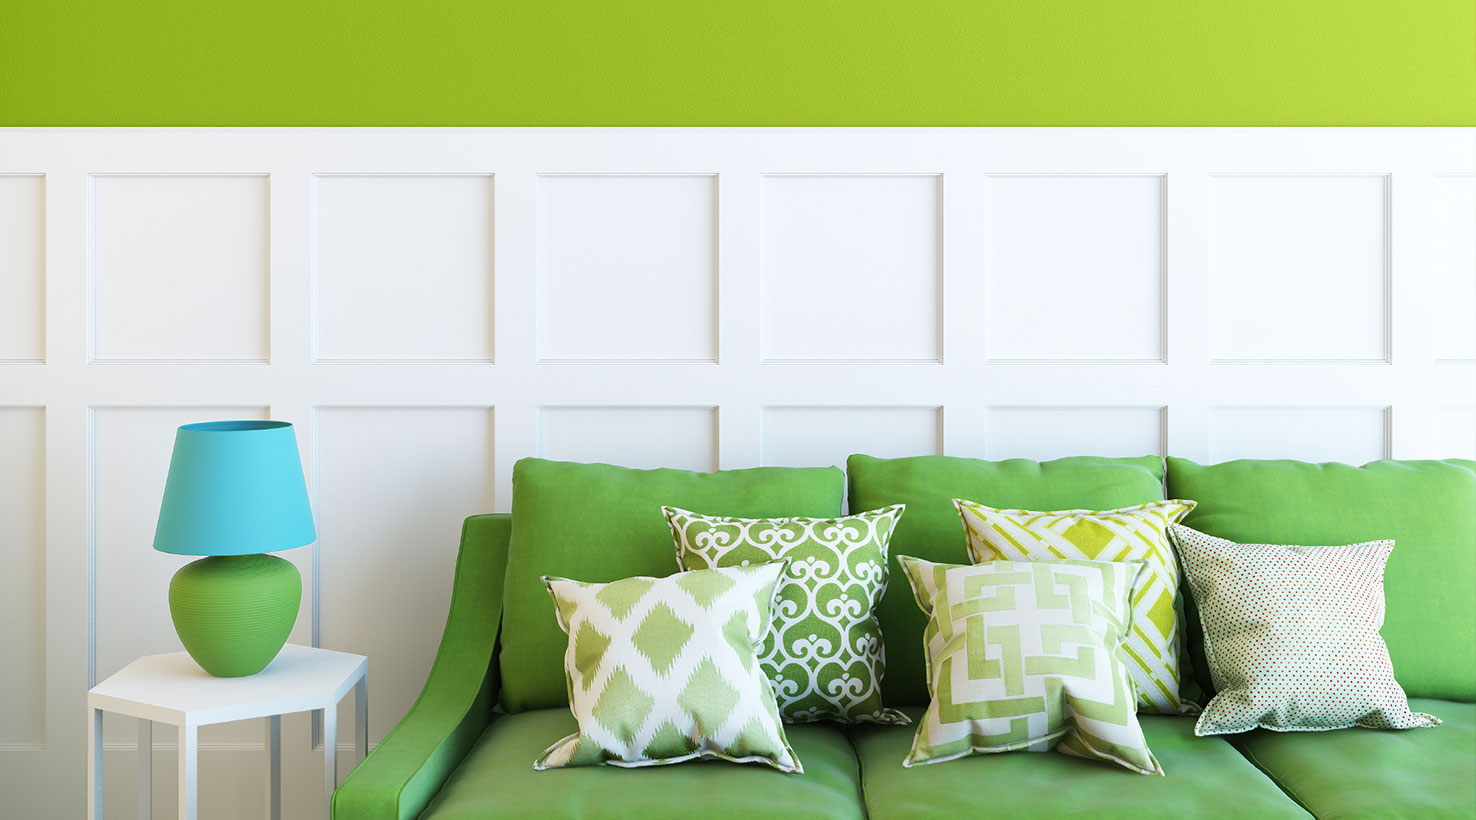 living room paint color ideas  inspiration gallery  sherwinwilliams -  living room  greens